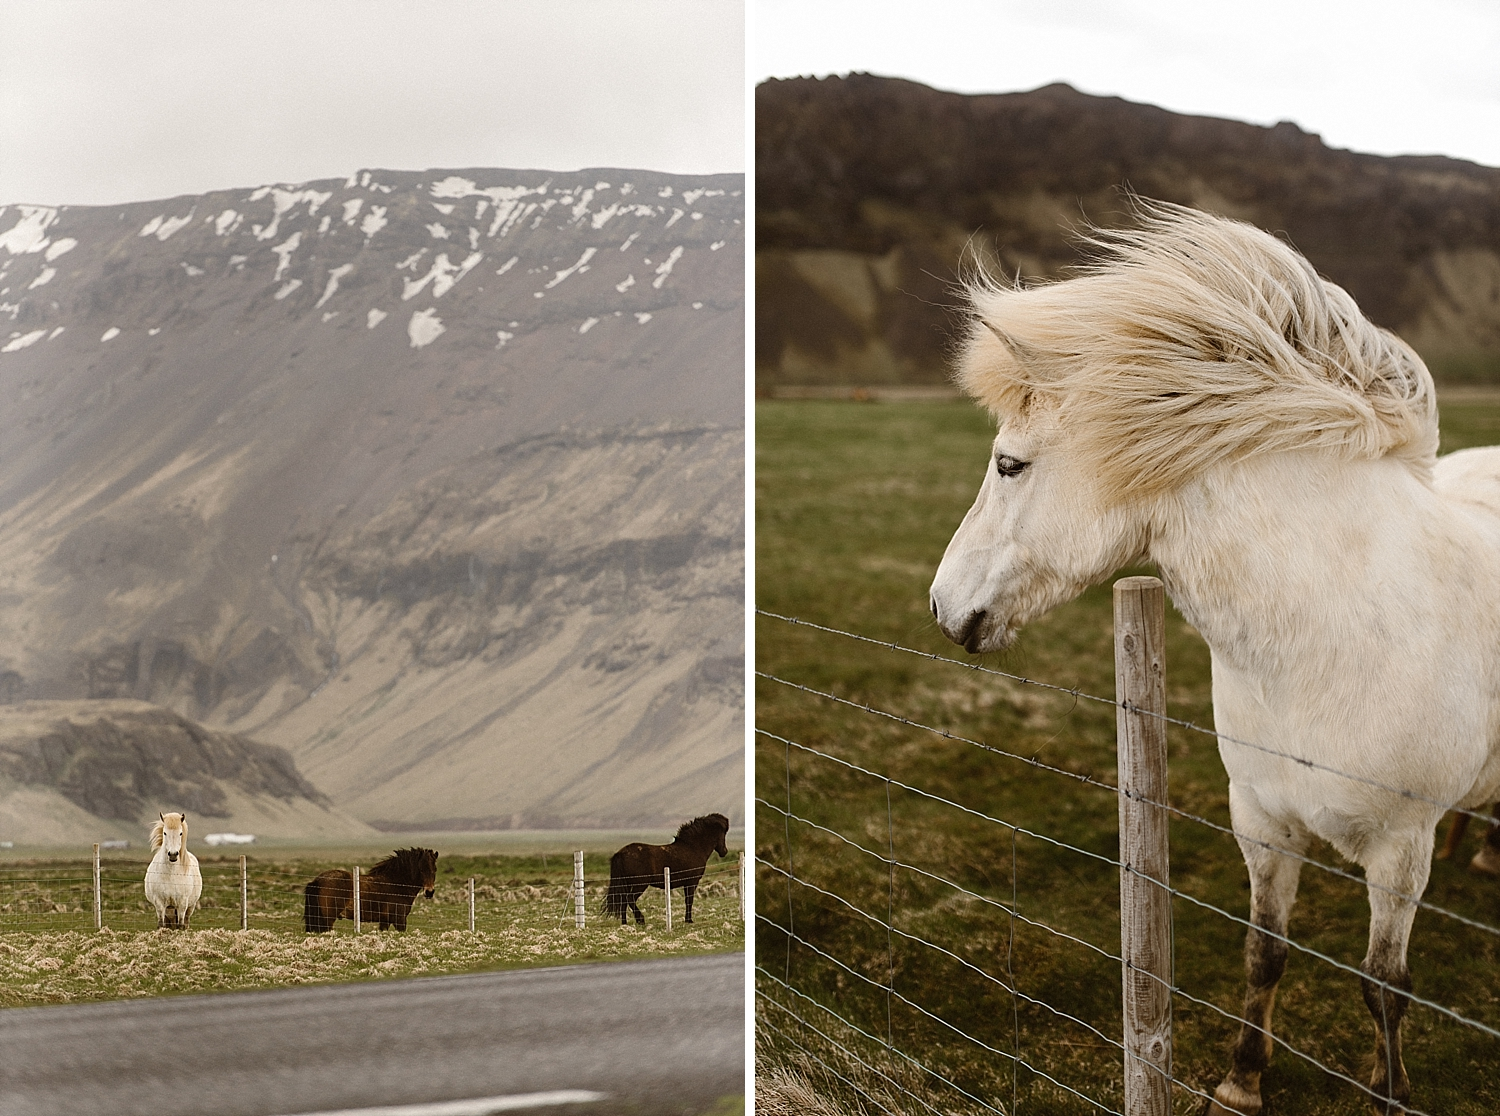 Iceland is filled with all kinds of wildlife. A personal favorite being the fluffy horse all around the hillsides!